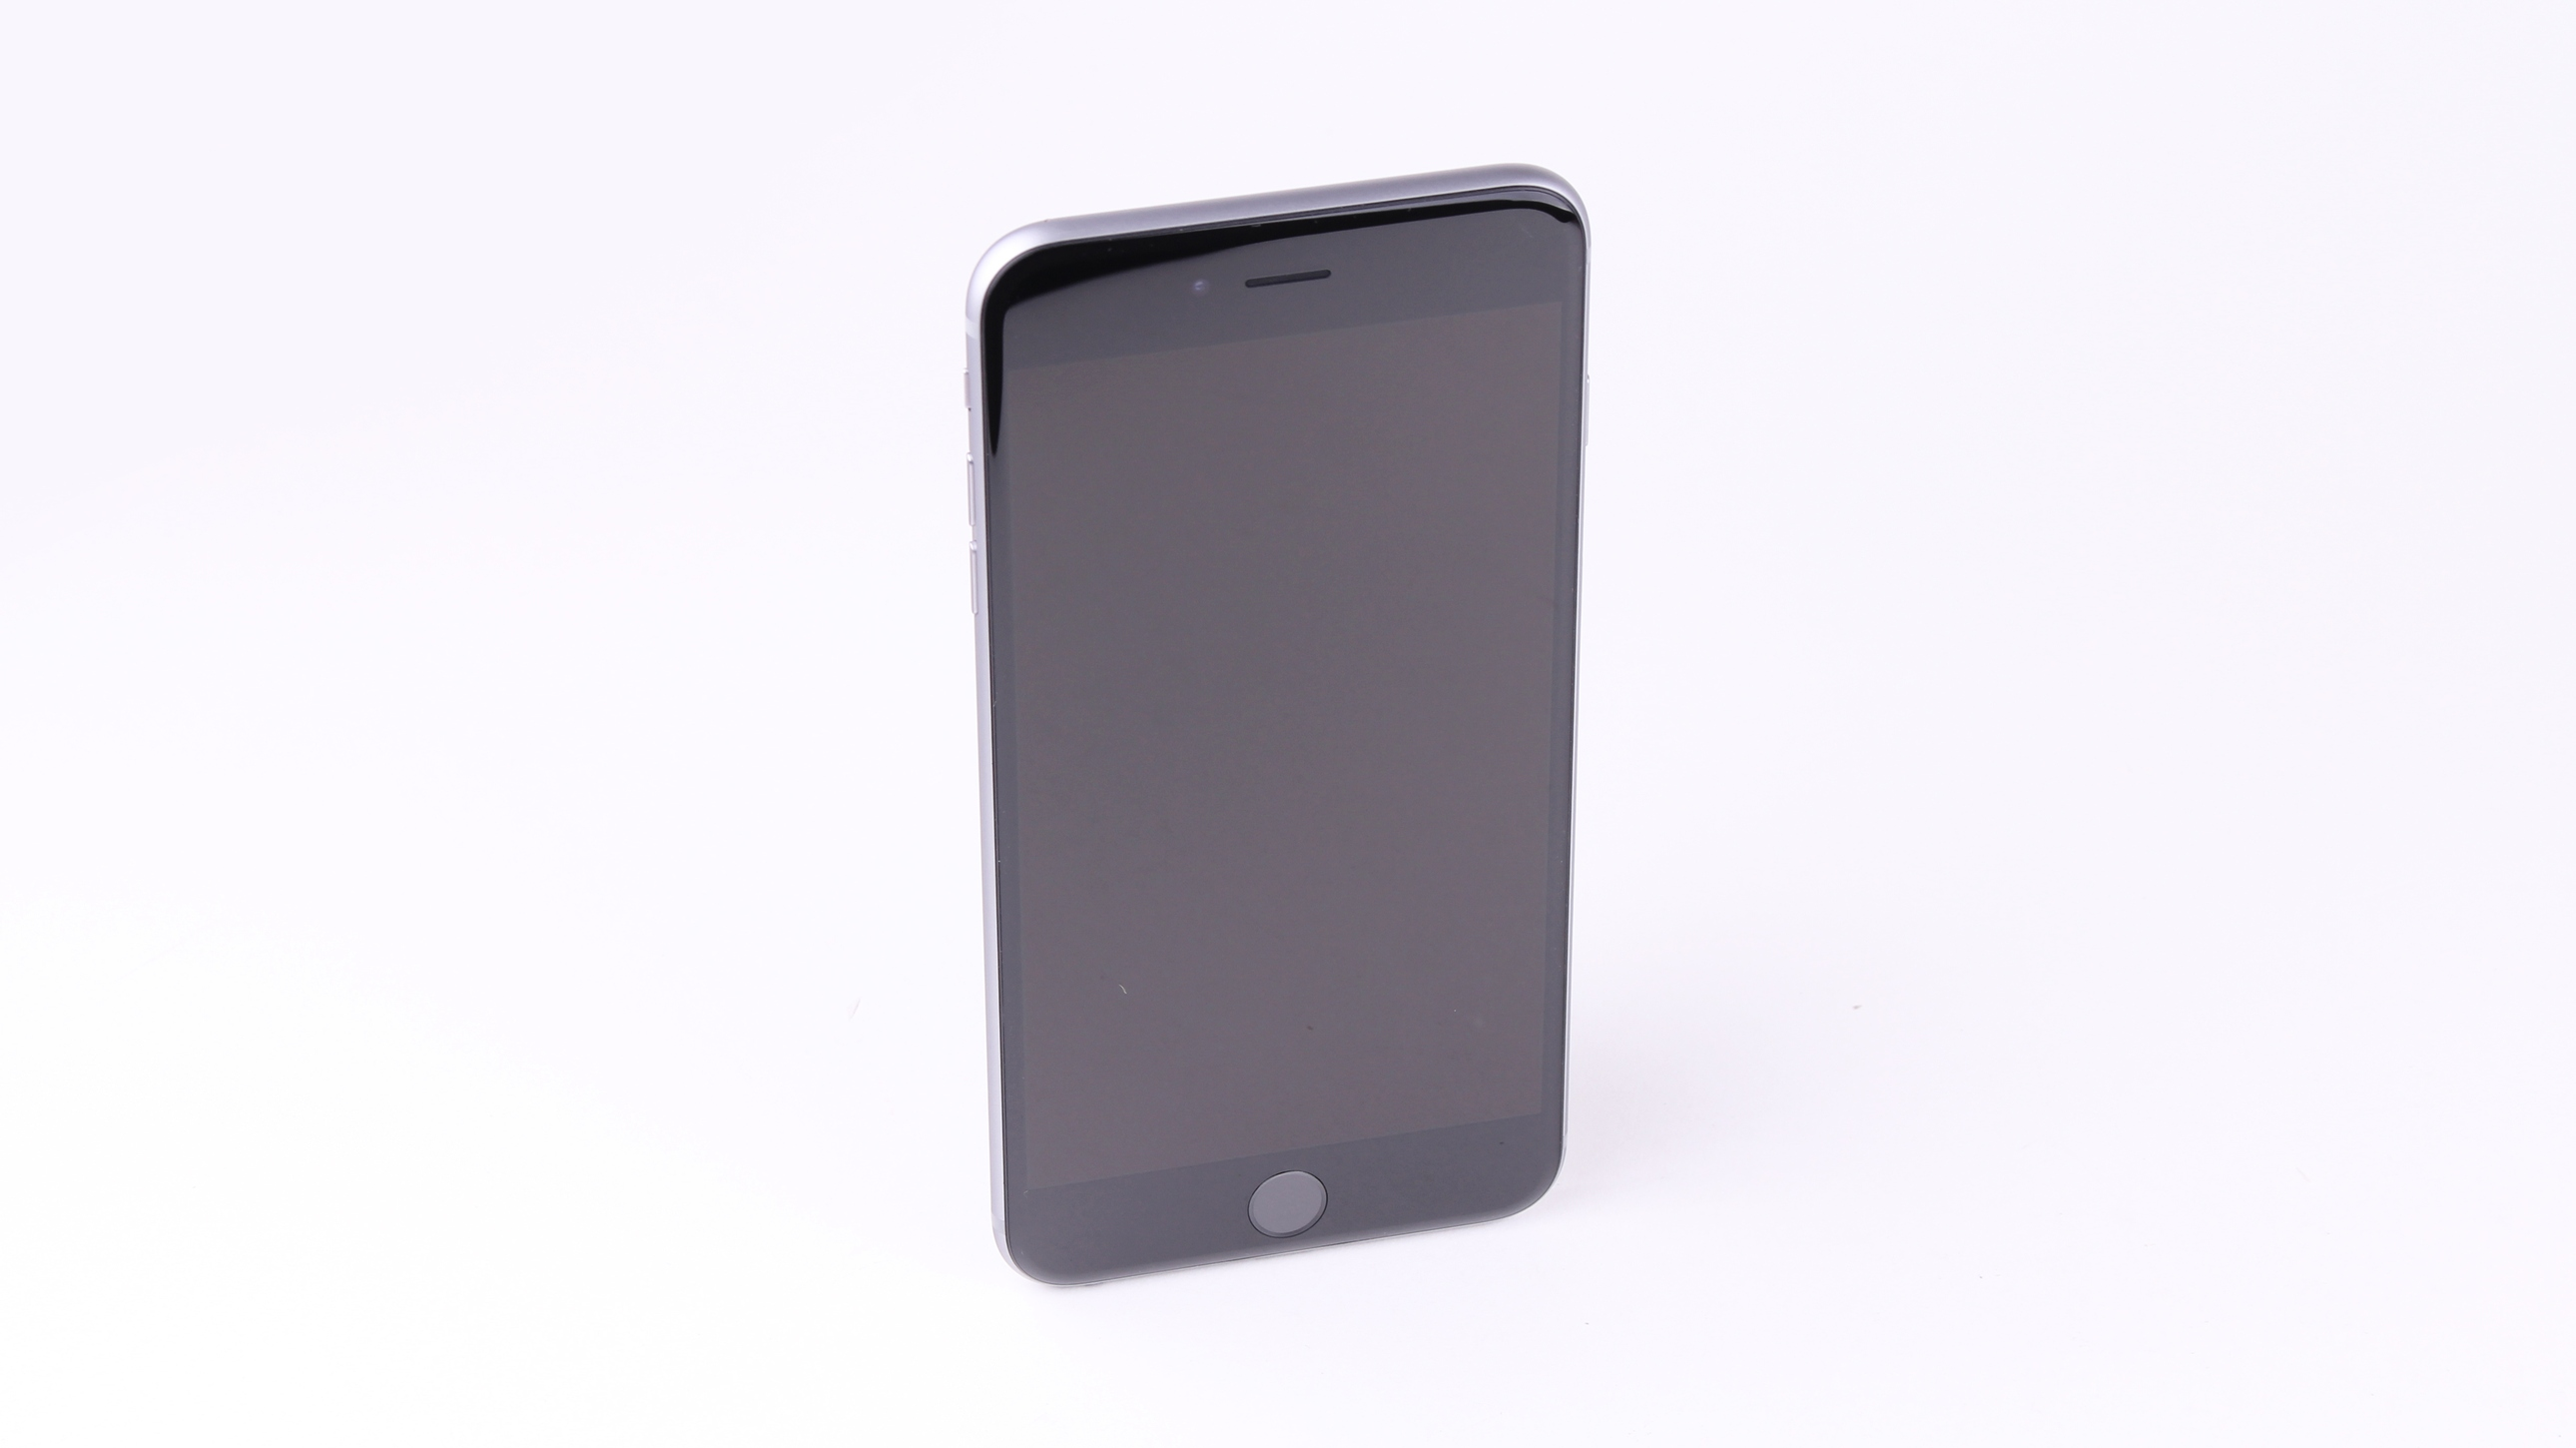 Iphone 6 Plus 16gb Space Grey Duct Tape Workshop Next